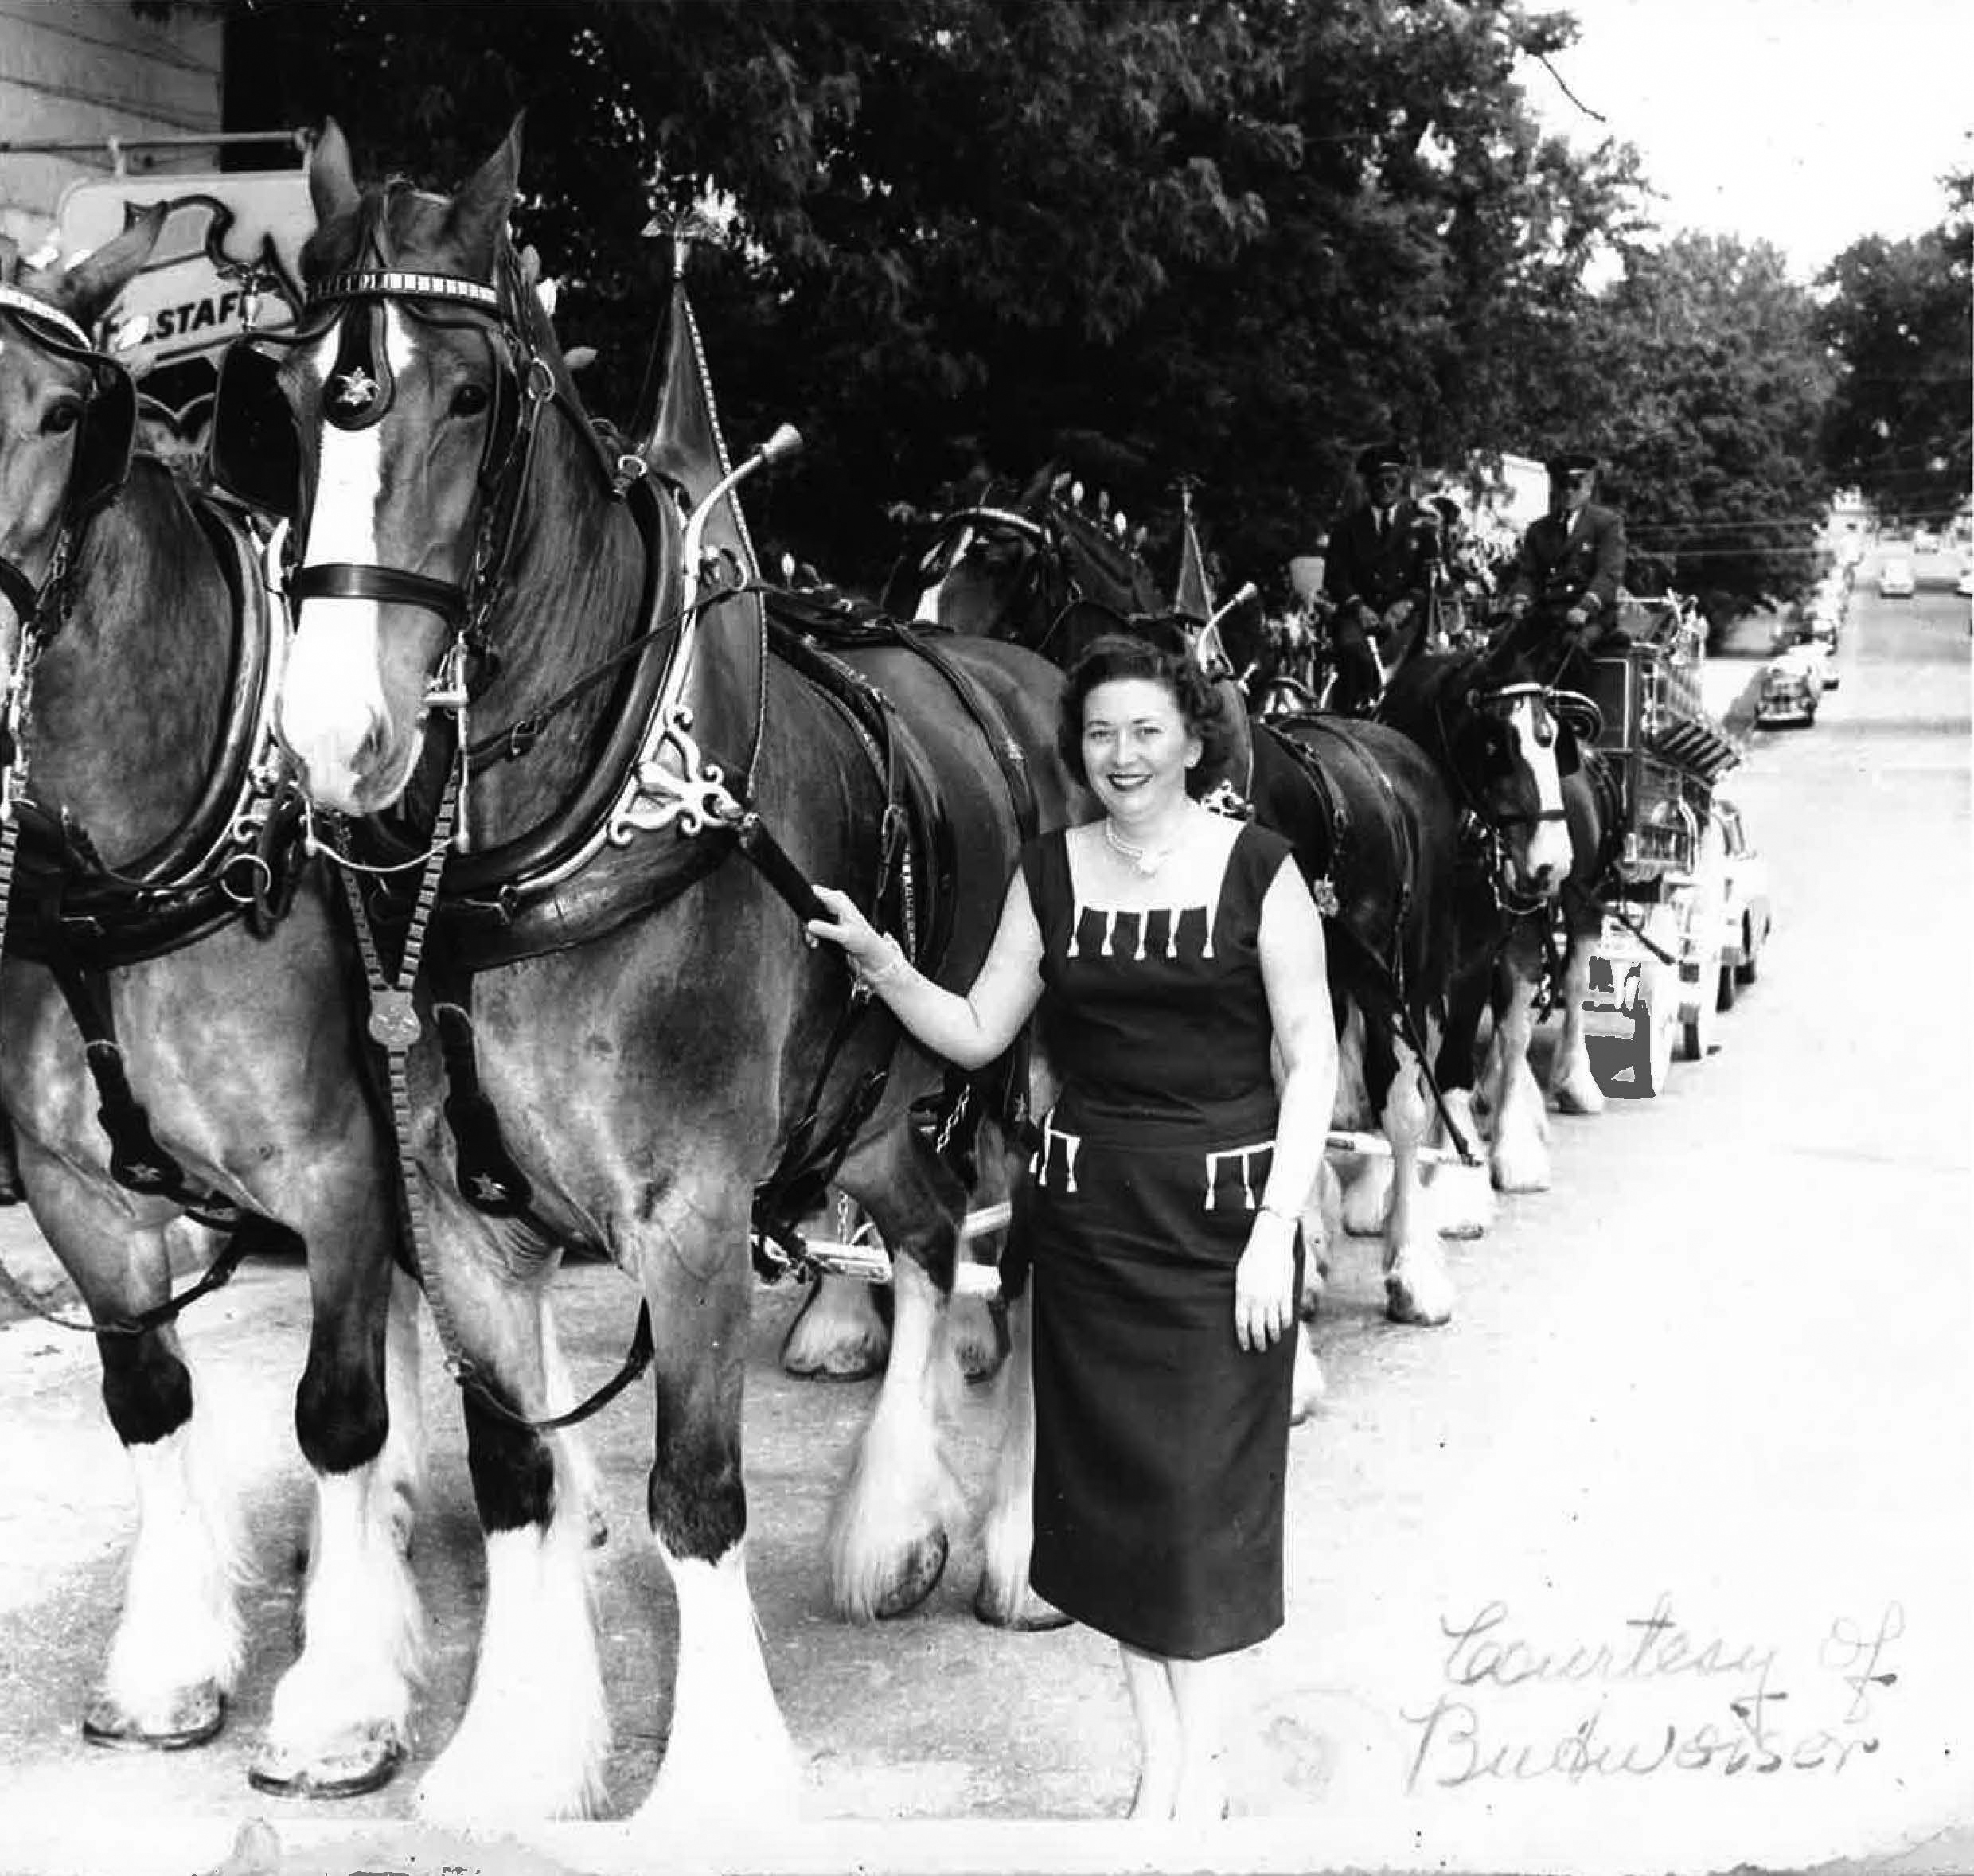 Maxine with Clydesdales - 1960ish - Partial Pic.jpg